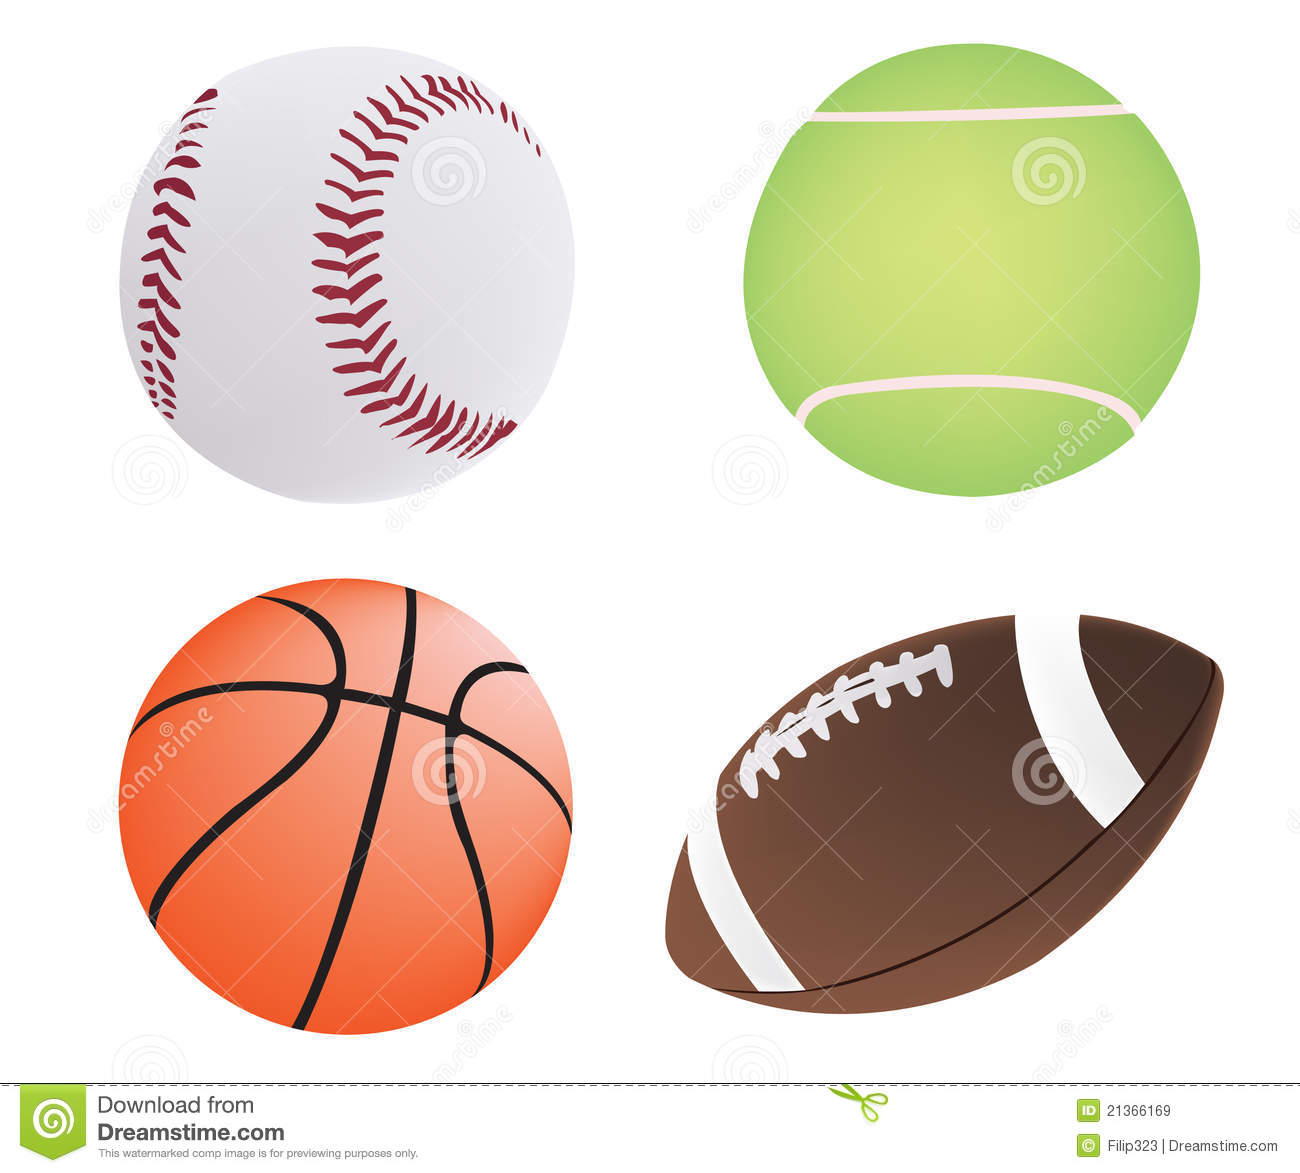 Four Different Ball Royalty Free Stock Images - Image: 21366169